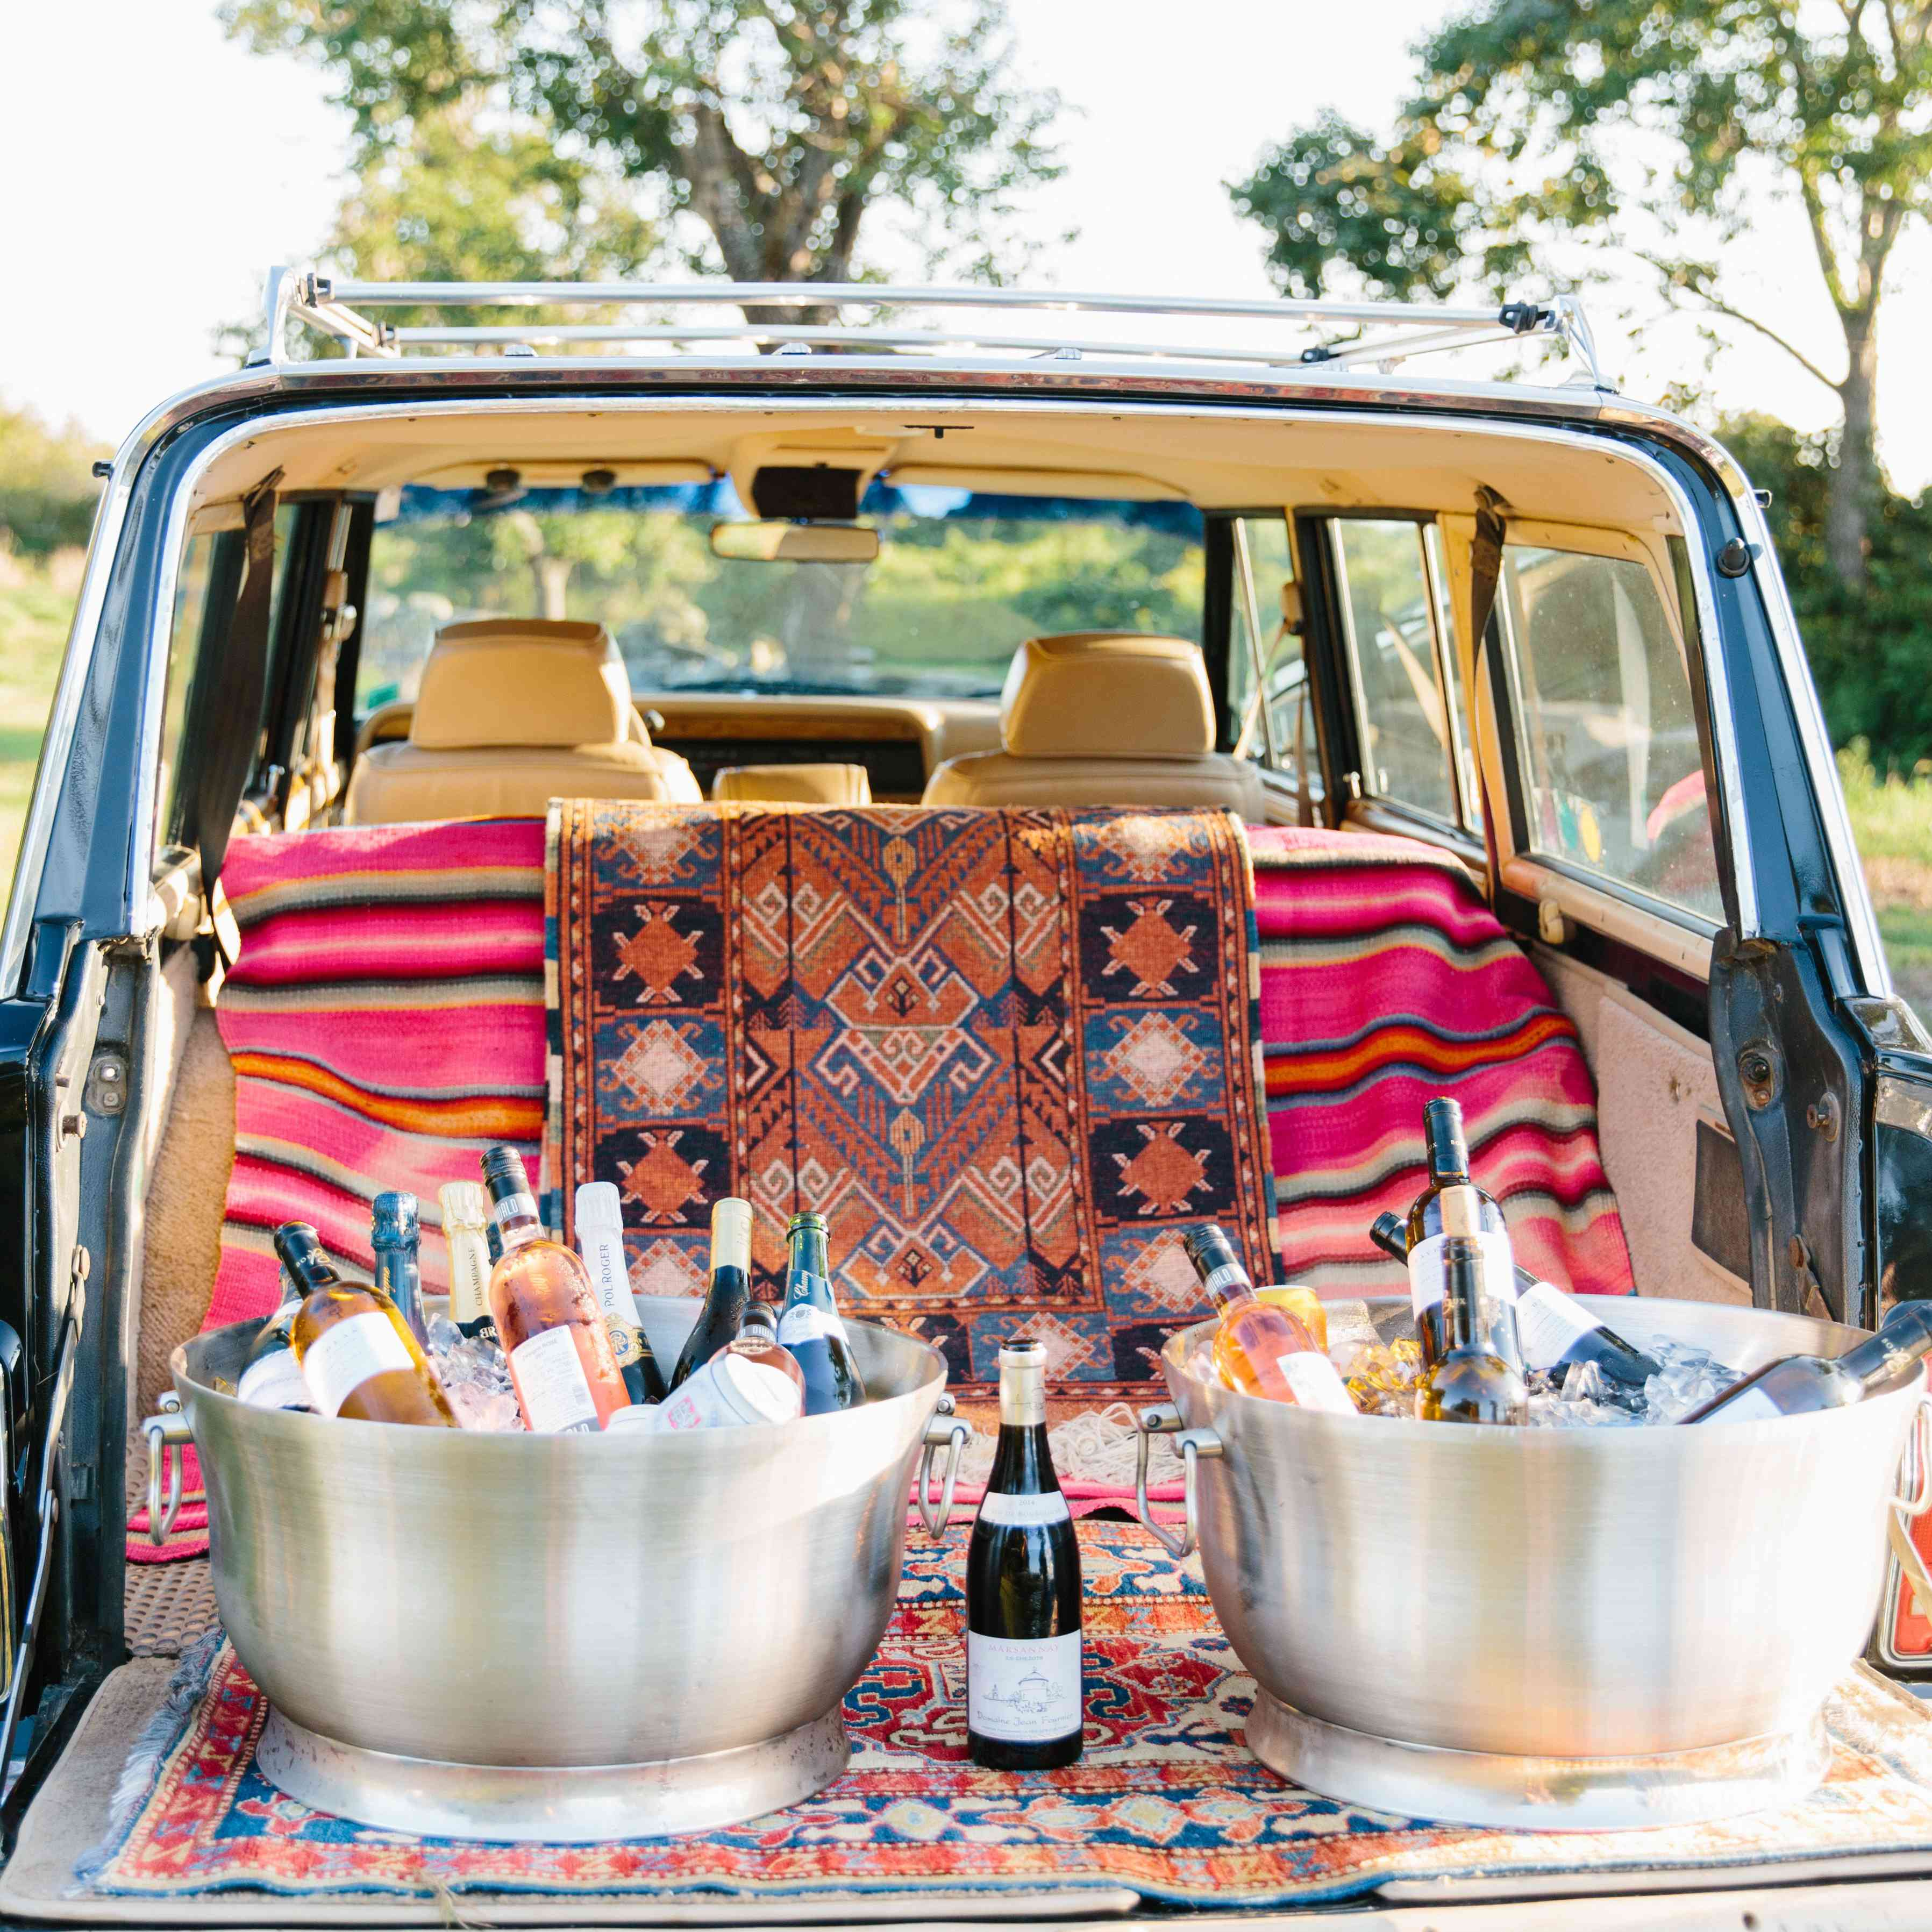 Wine on ice in the trunk of a car